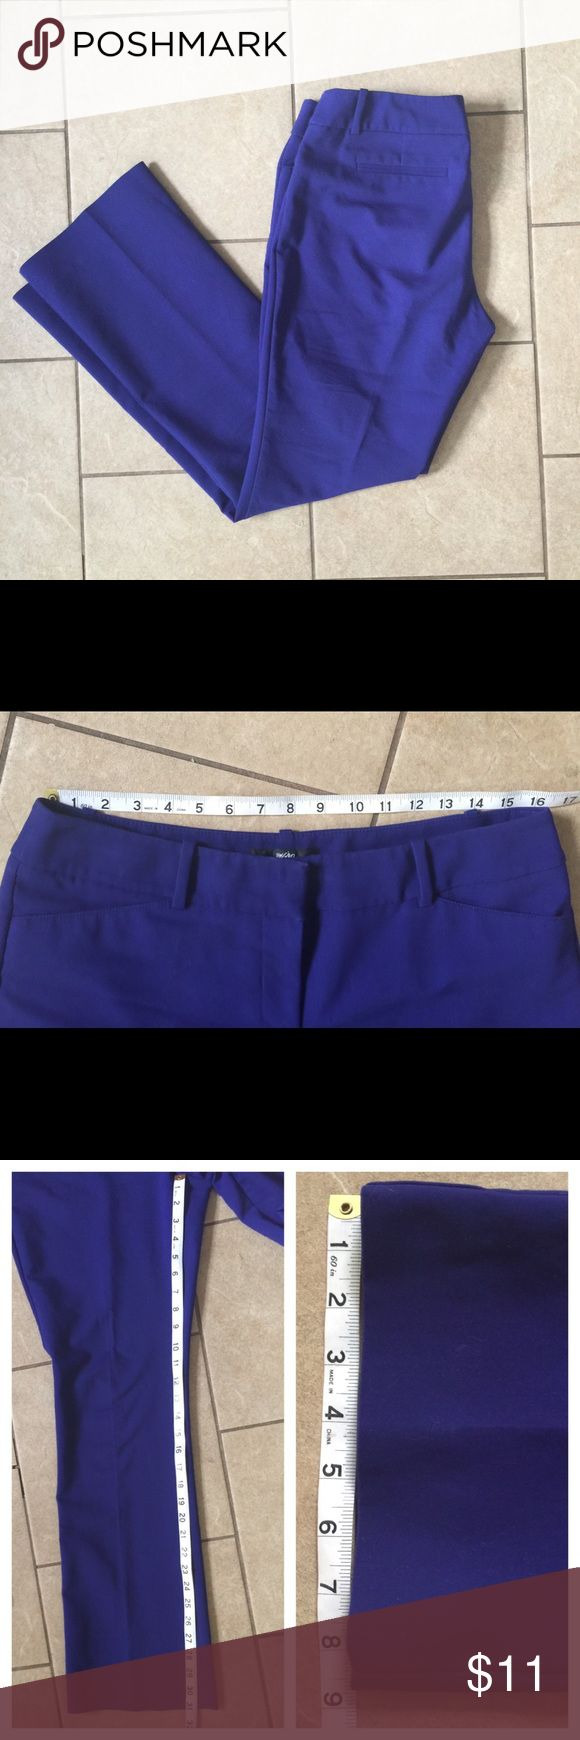 Mossimo Stretch Dress Pants Size 10 Color is electric blue/purple, measurements as shown. Two front pockets, two faux back pockets. Great condition no rips, stains or tears. Mossimo Supply Co Pants Boot Cut & Flare